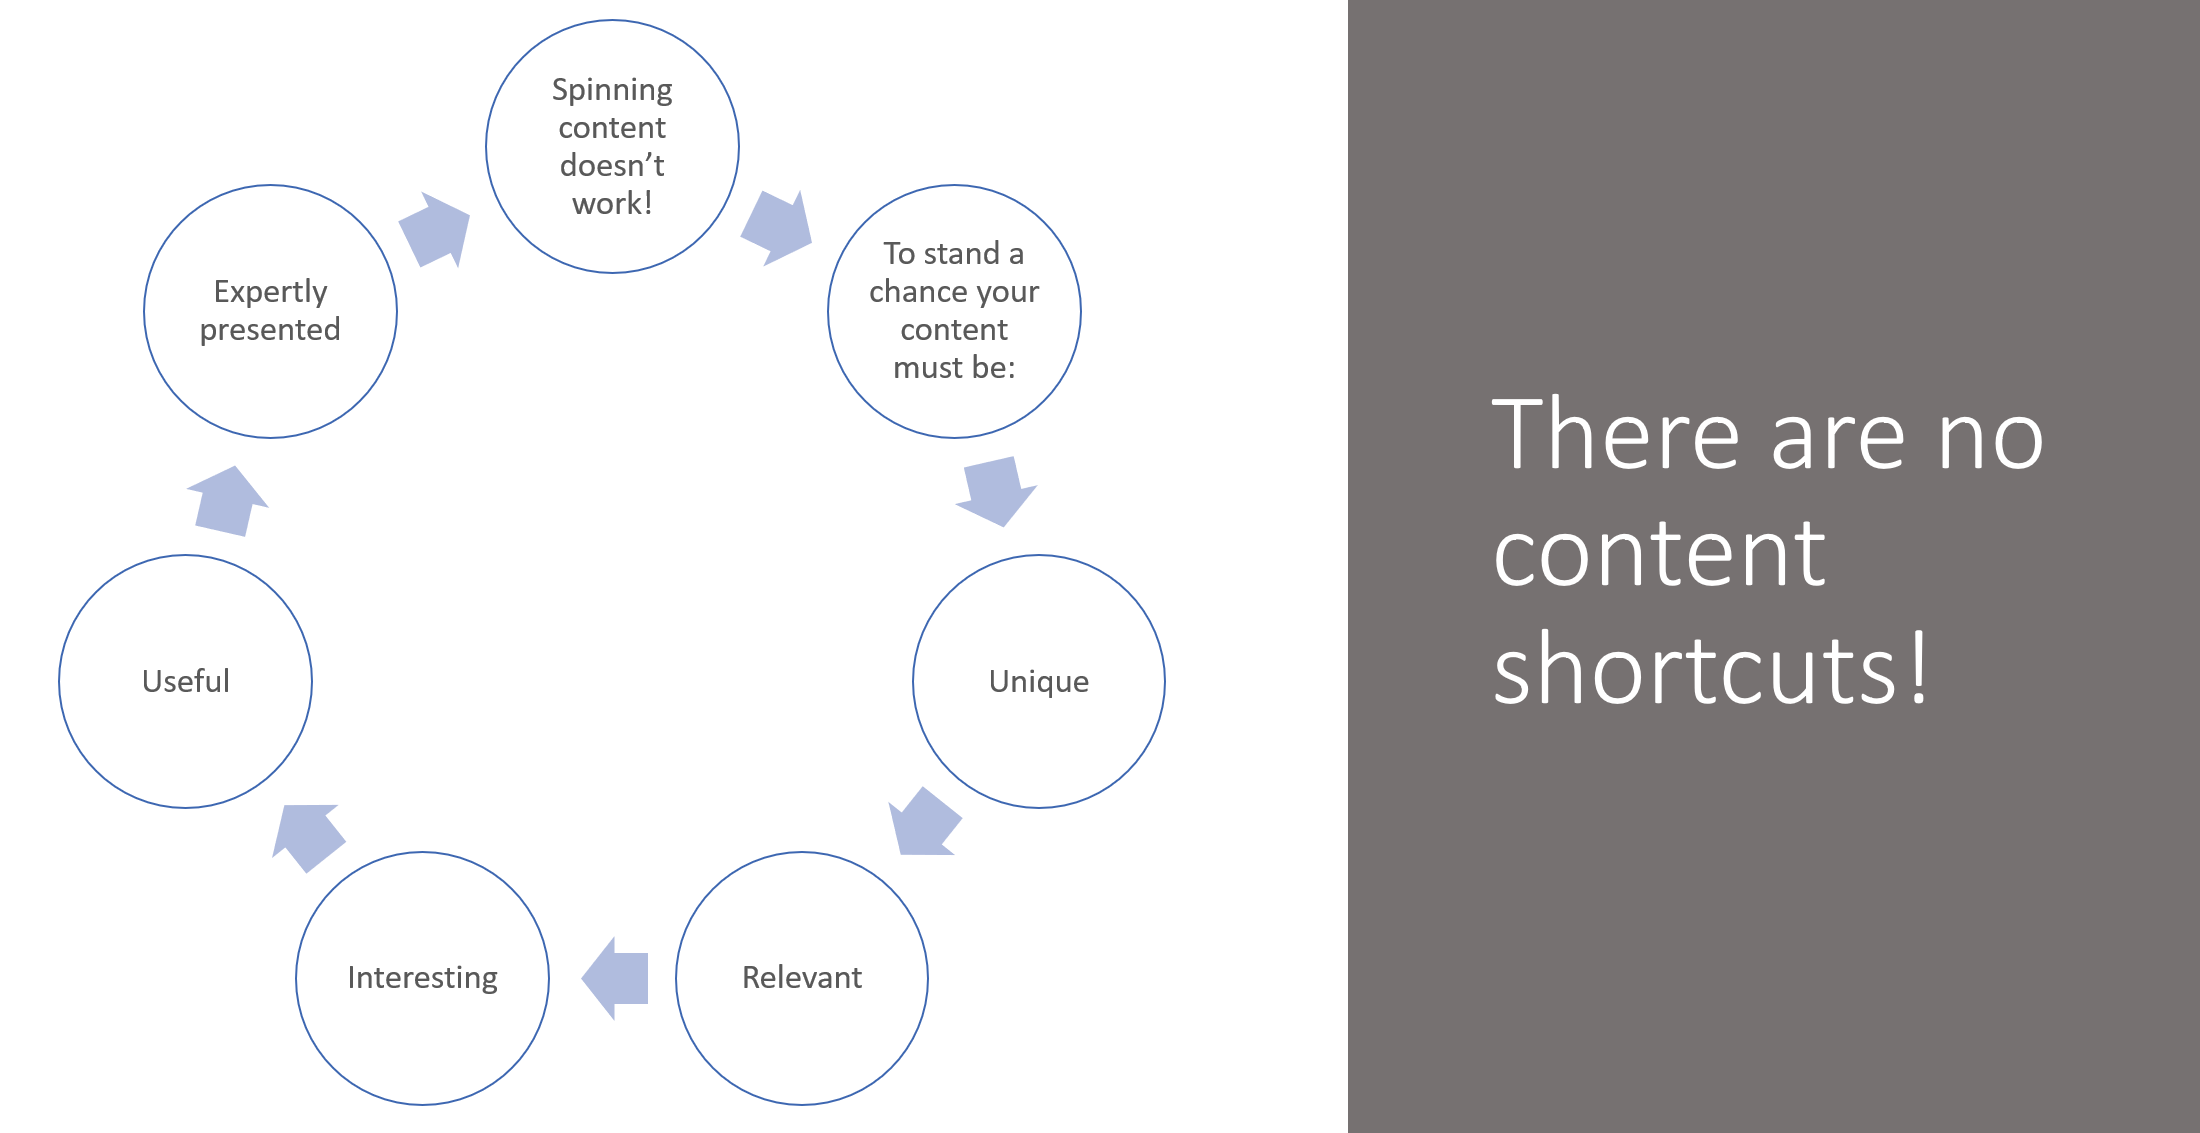 There are no content shortcuts.png